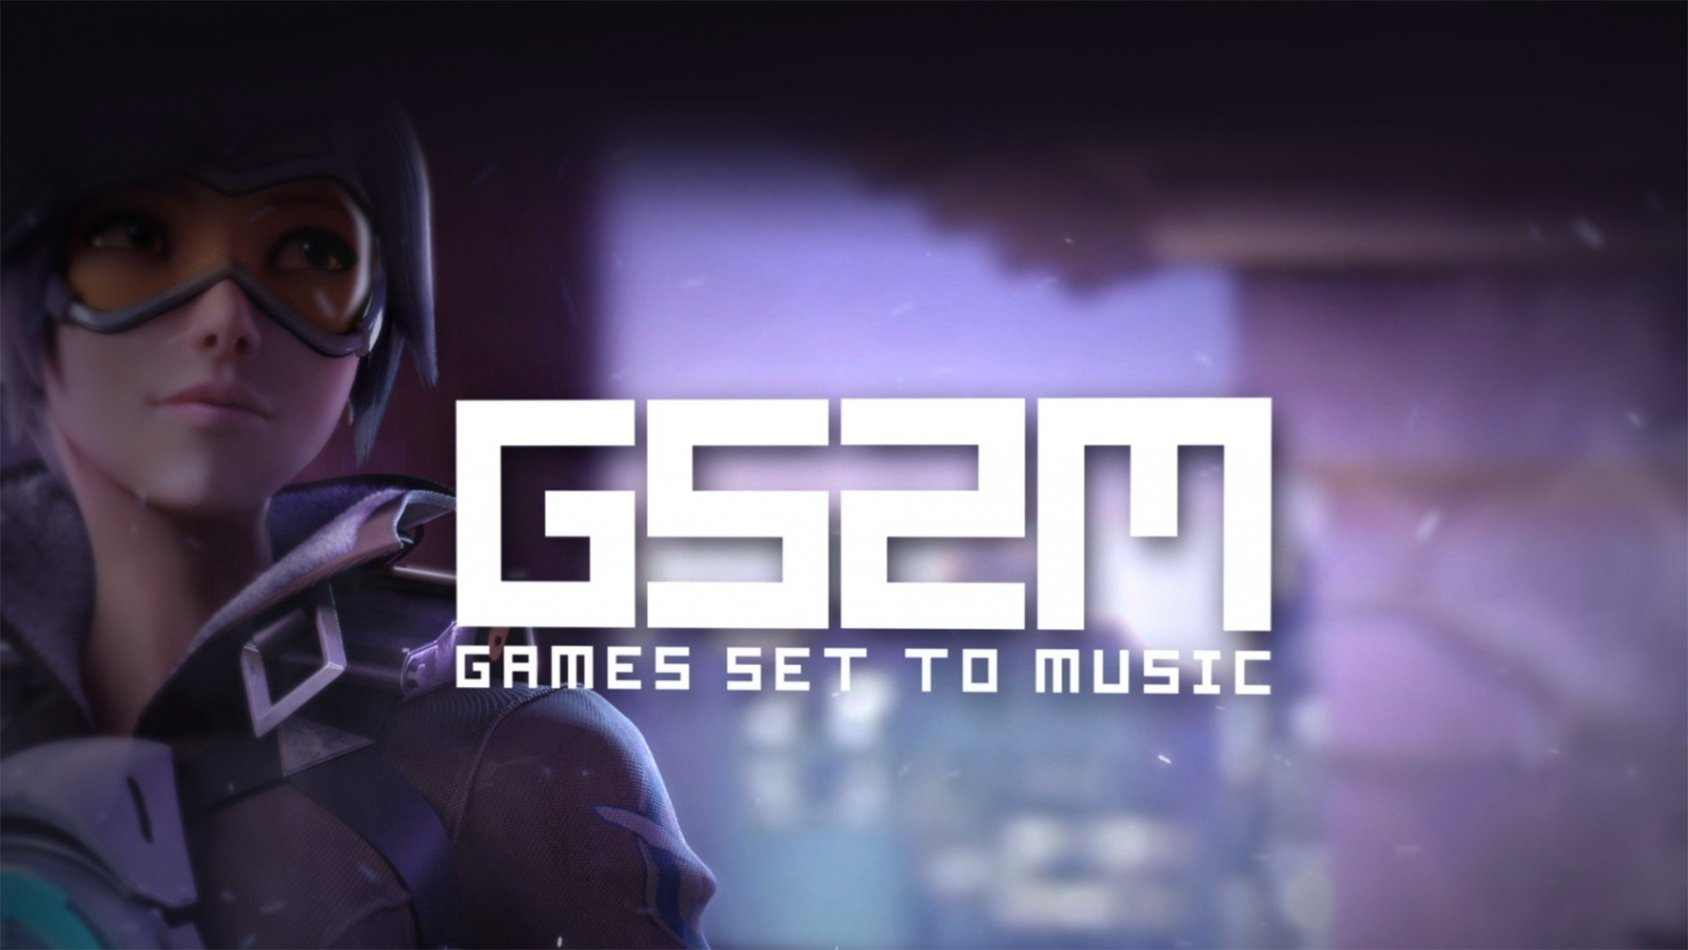 Games Set To Music